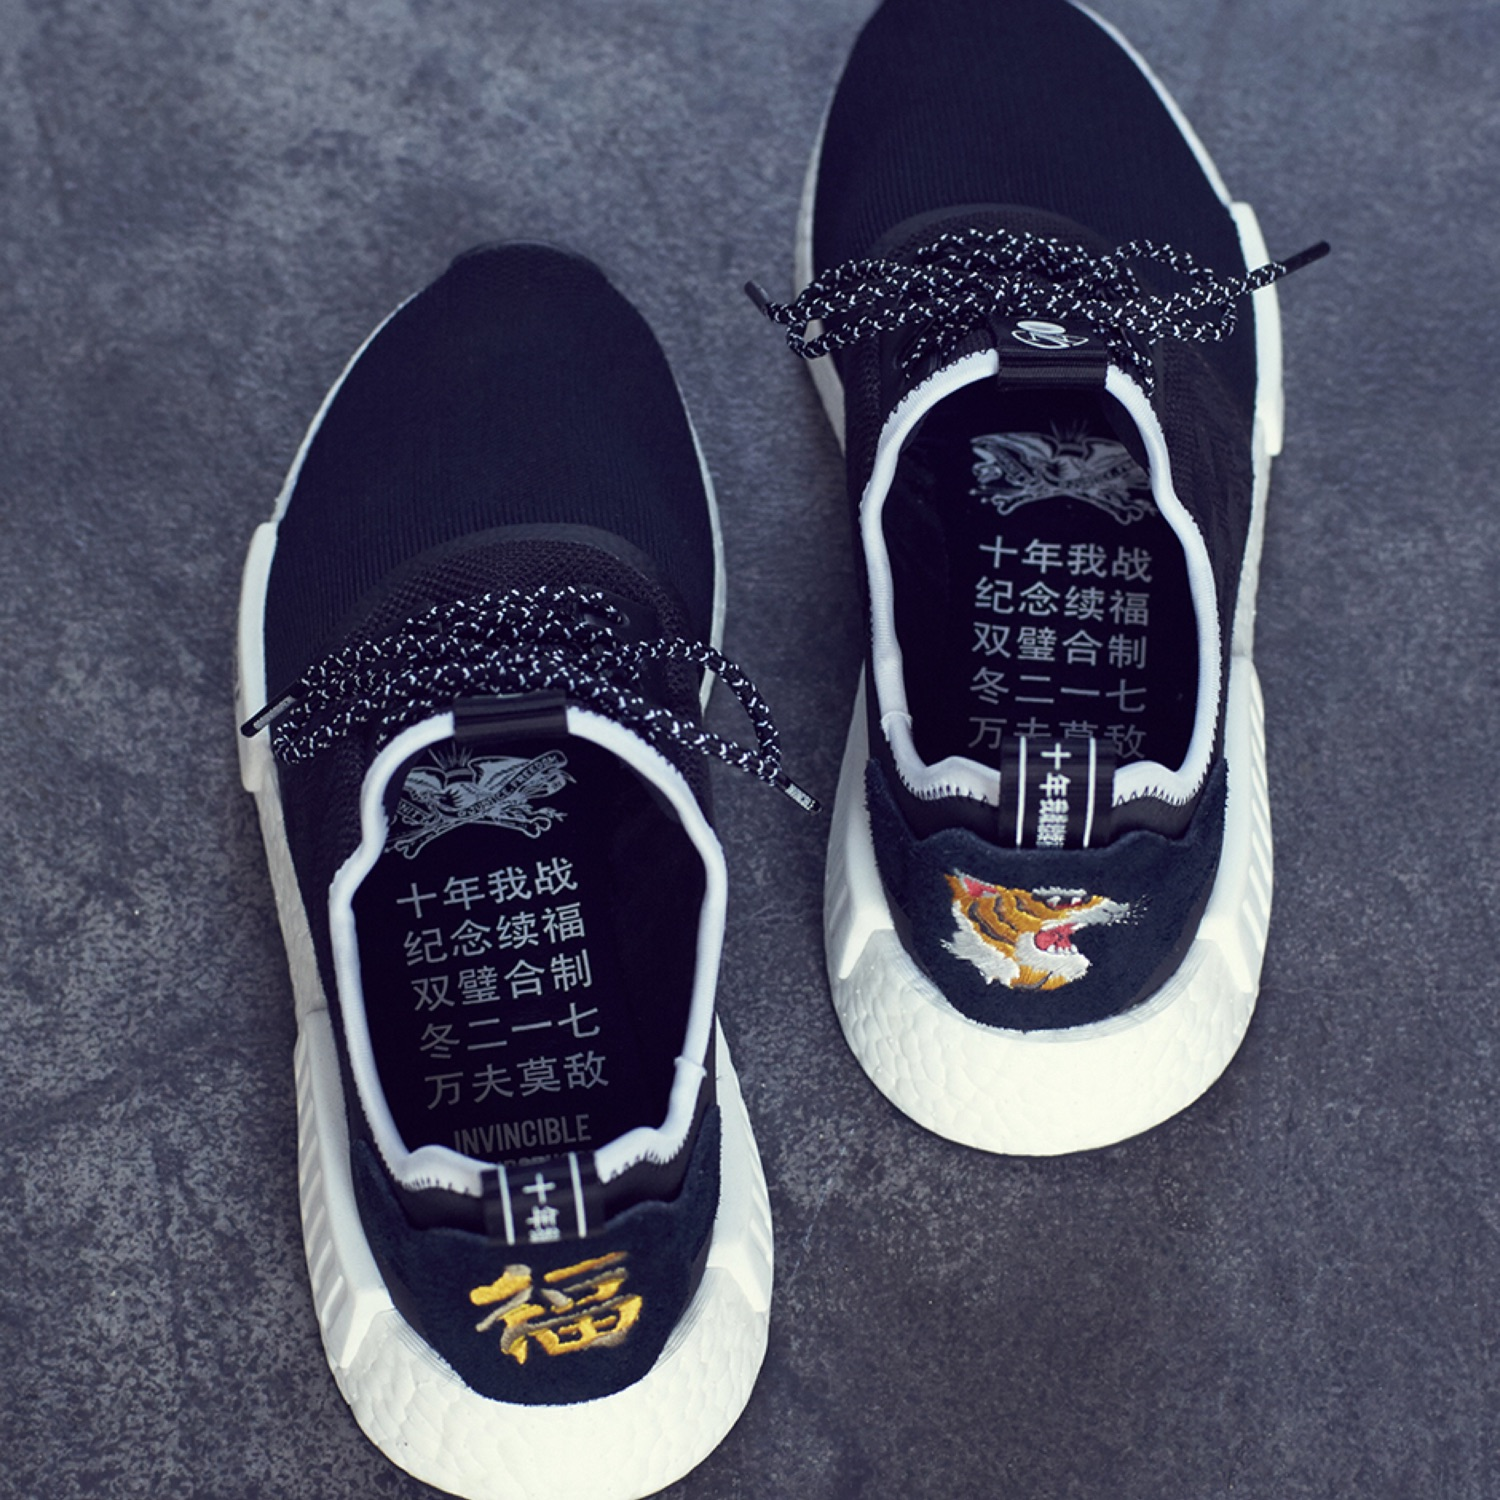 low priced 99af6 58bf1 Adidas X Neighborhood X Invisible Nmd R1